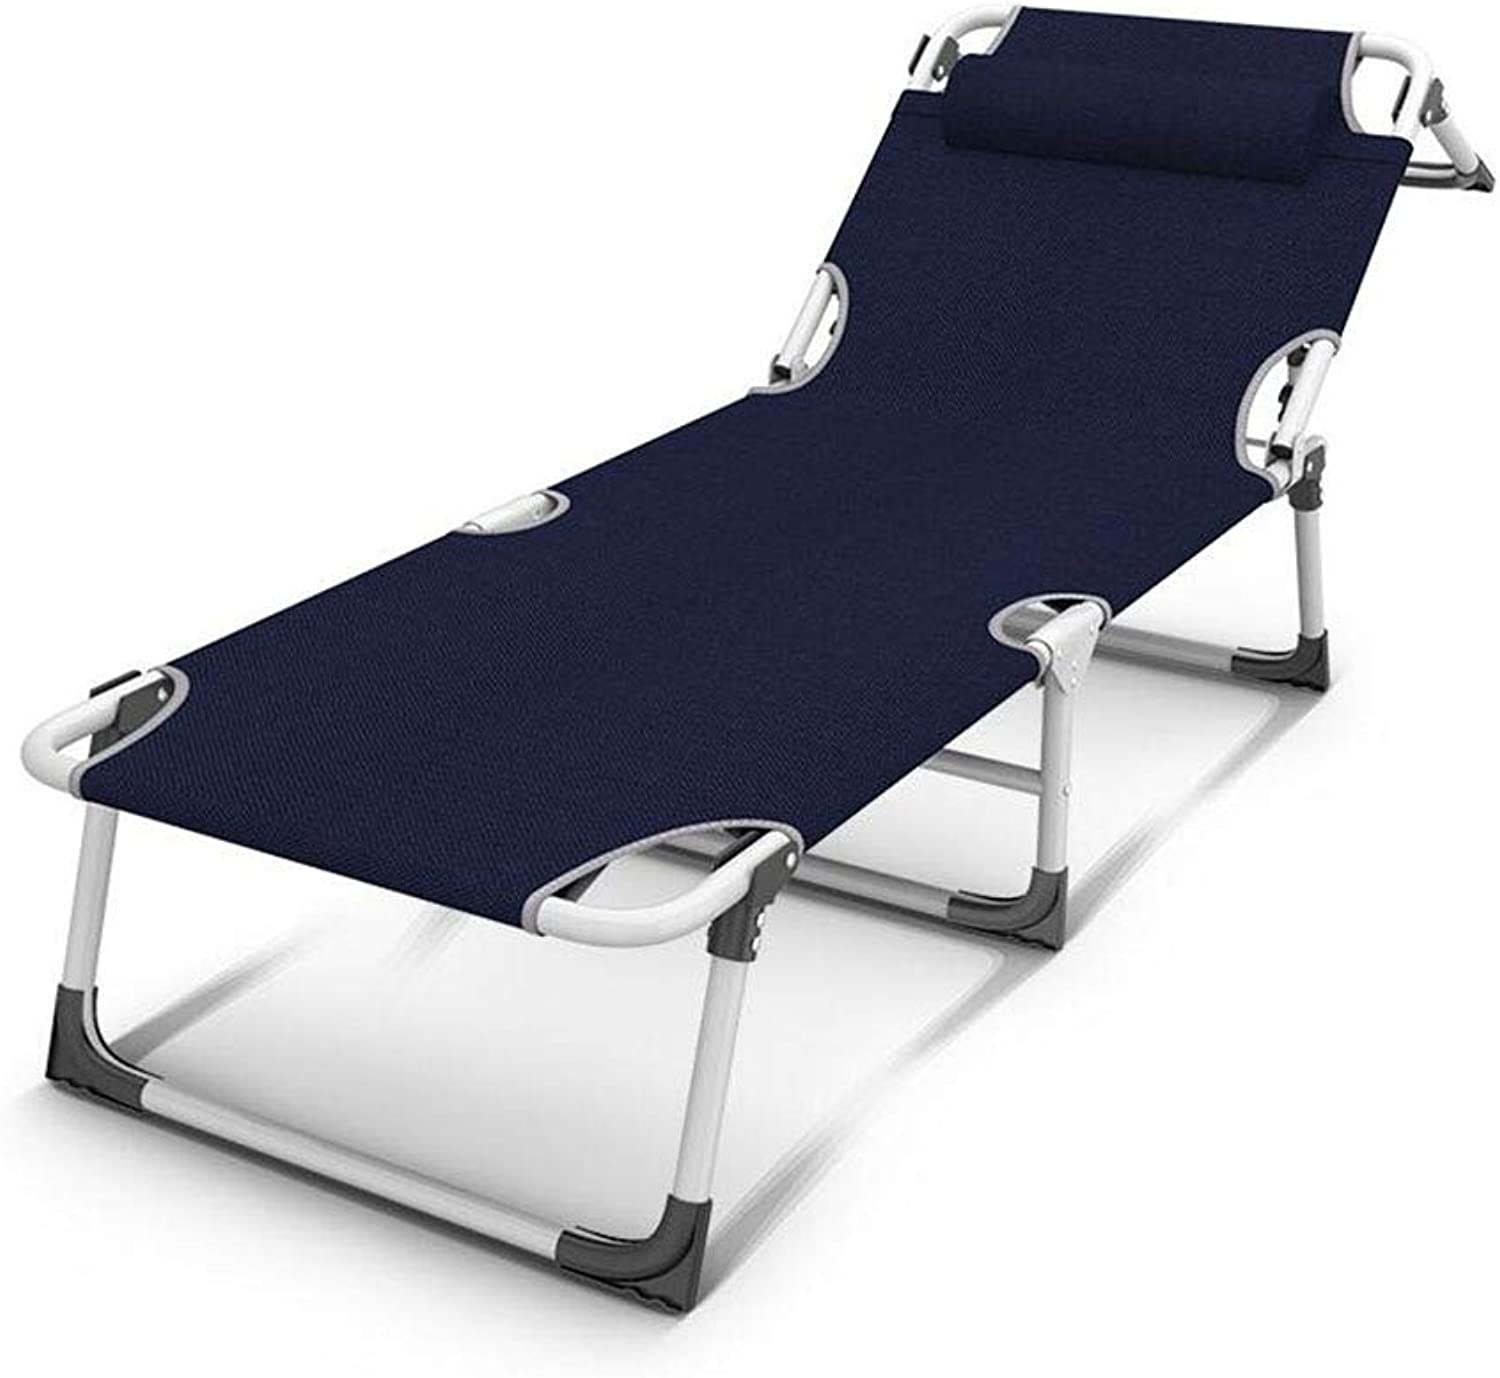 Djyyh Sunbed Reclining Folding Patio Bed Recliner Lounge Garden Outdoor (color   T1)